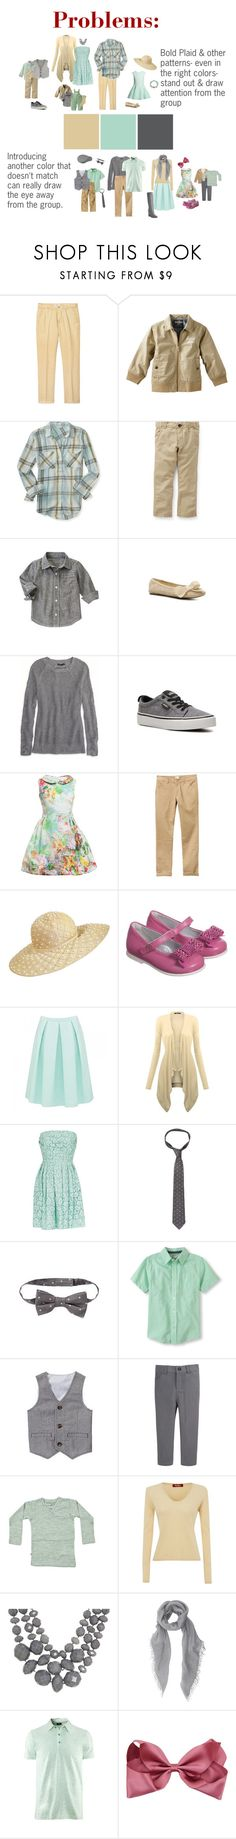 """what not to wear"" by welkerphotography ❤ liked on Polyvore featuring Aéropostale, Gymboree, Carter's, Rocket Dog, American Eagle Outfitters, Vans, RVCA, Blumarine, Forever New and Boutique Moschino"